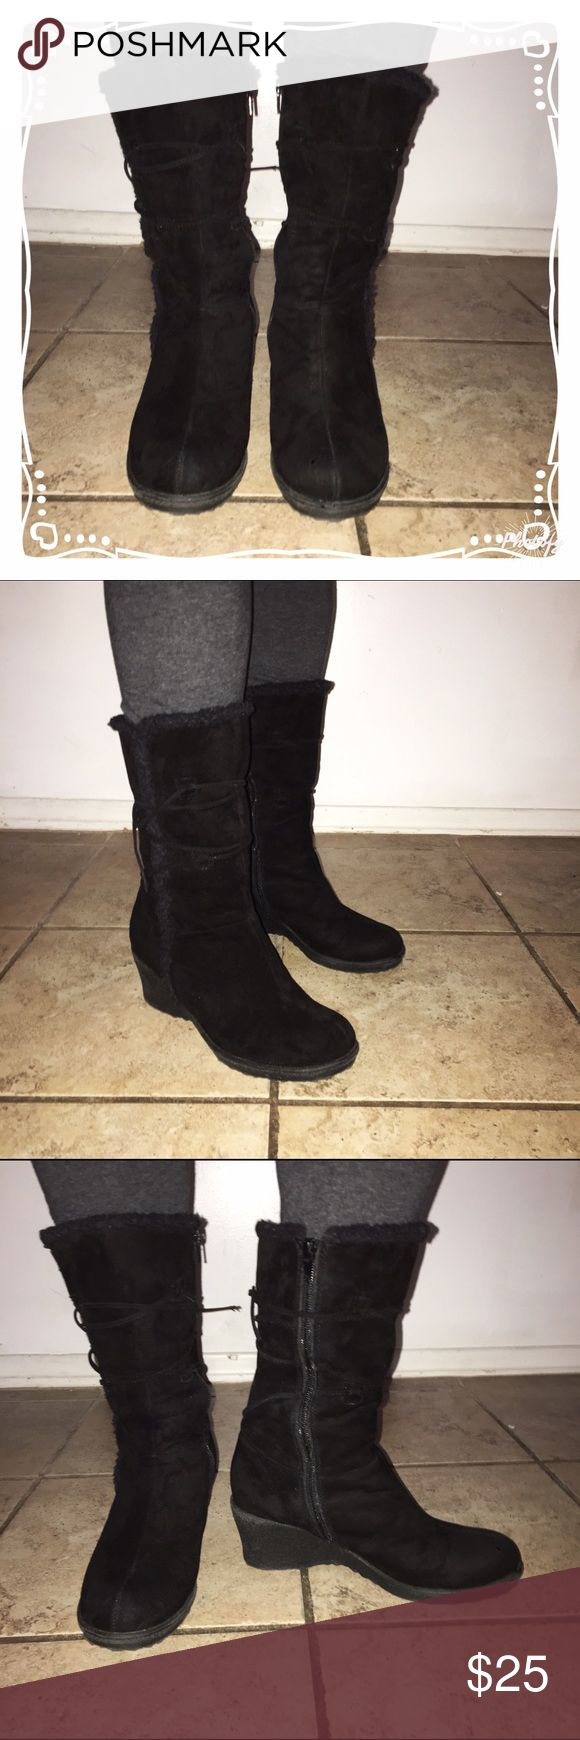 Black Suede Wedge Boots! 👢 Black suede boots with wedge heel and zipper on the side. Extremely comfortable! Used but in great condition. Heel is 2 1/2 inches high. No tears or marks. Shoes Heeled Boots